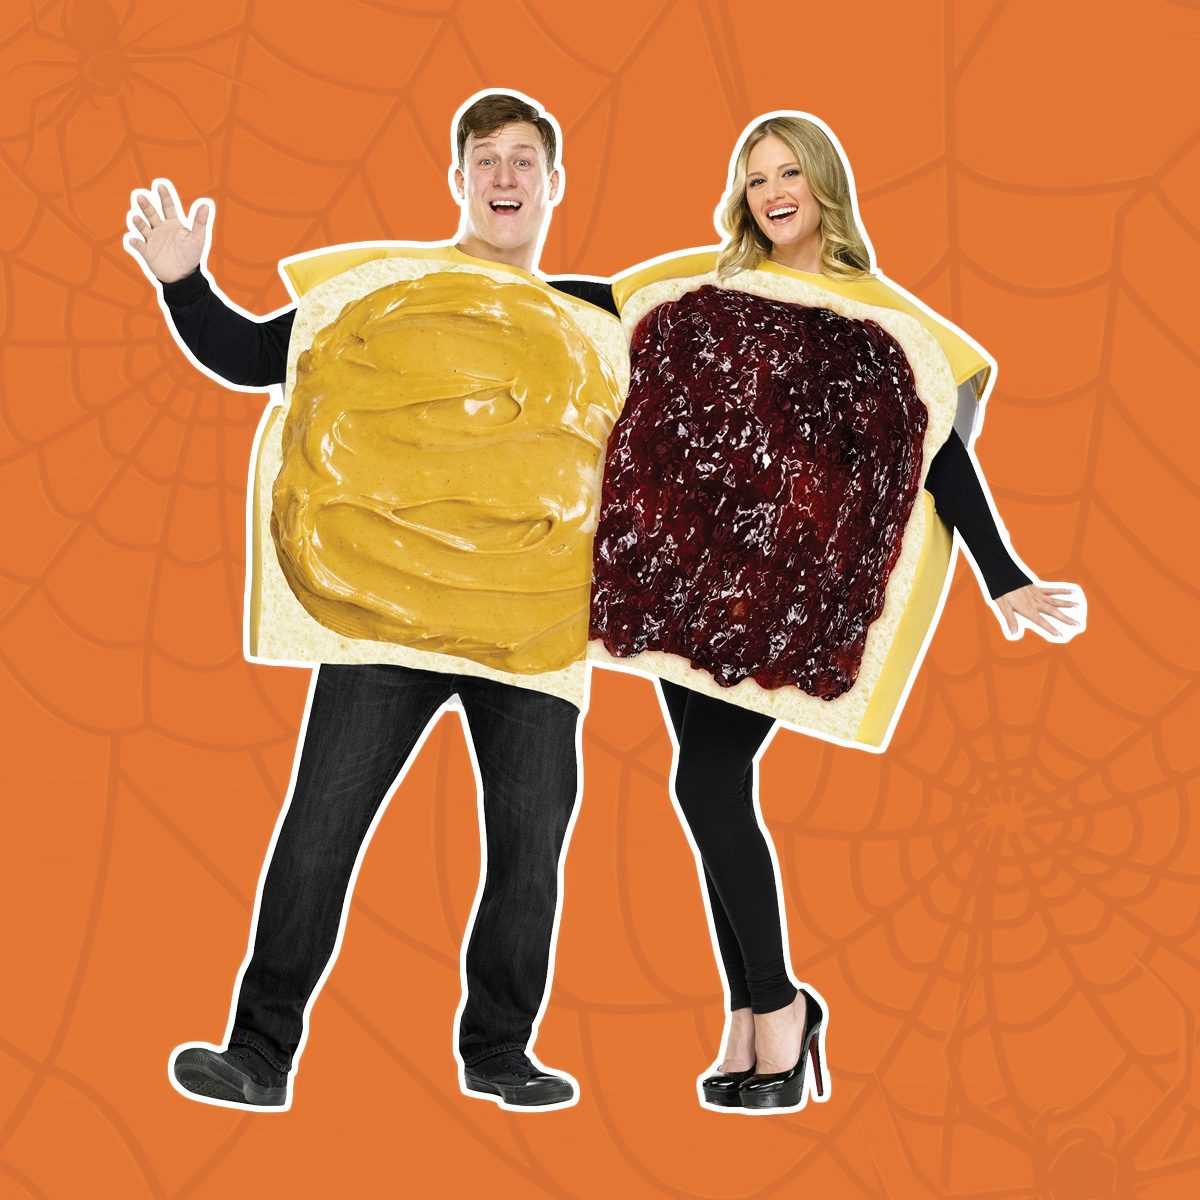 19 fun food costumes for halloween | taste of home